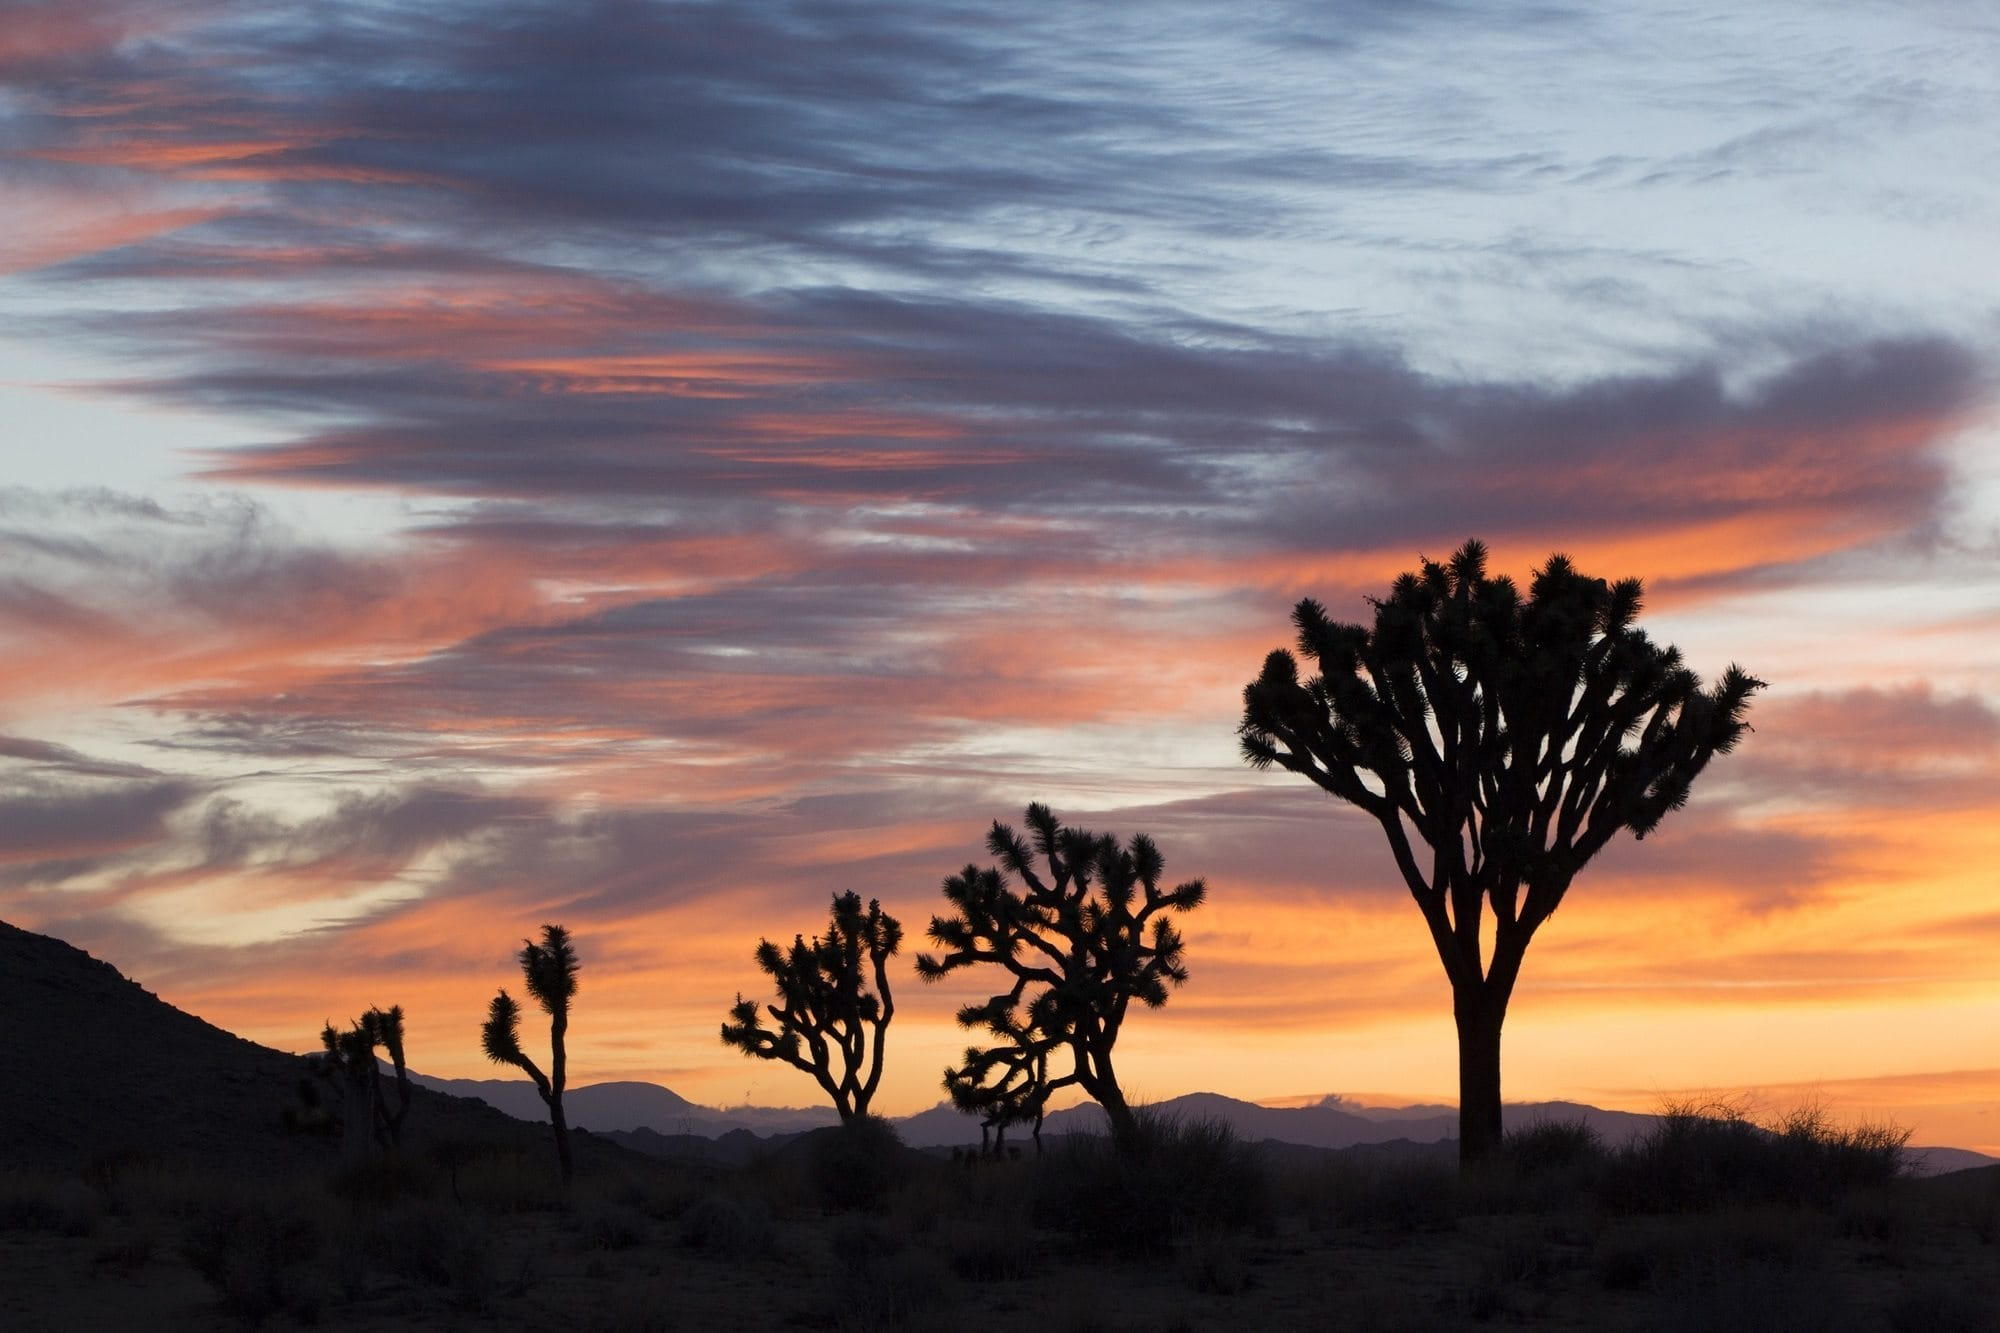 Plan a Joshua Tree backpacking trip w/ this detailed guide and itinerary to the 35 mile California Hiking & Riding Trail, w/ info on gear & water caches